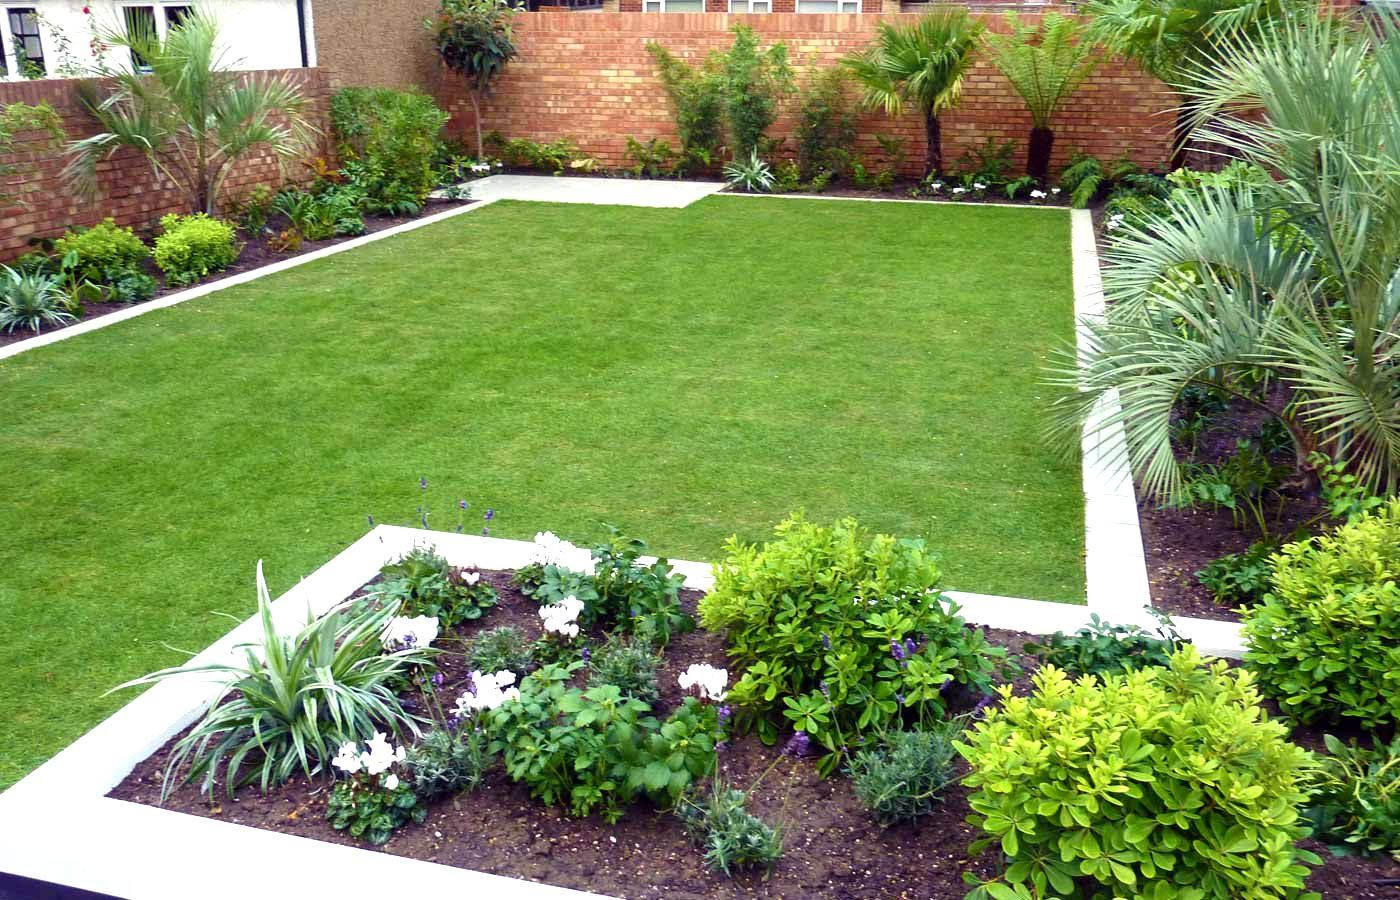 Simple garden designs no fret small garden design for Simple small garden ideas